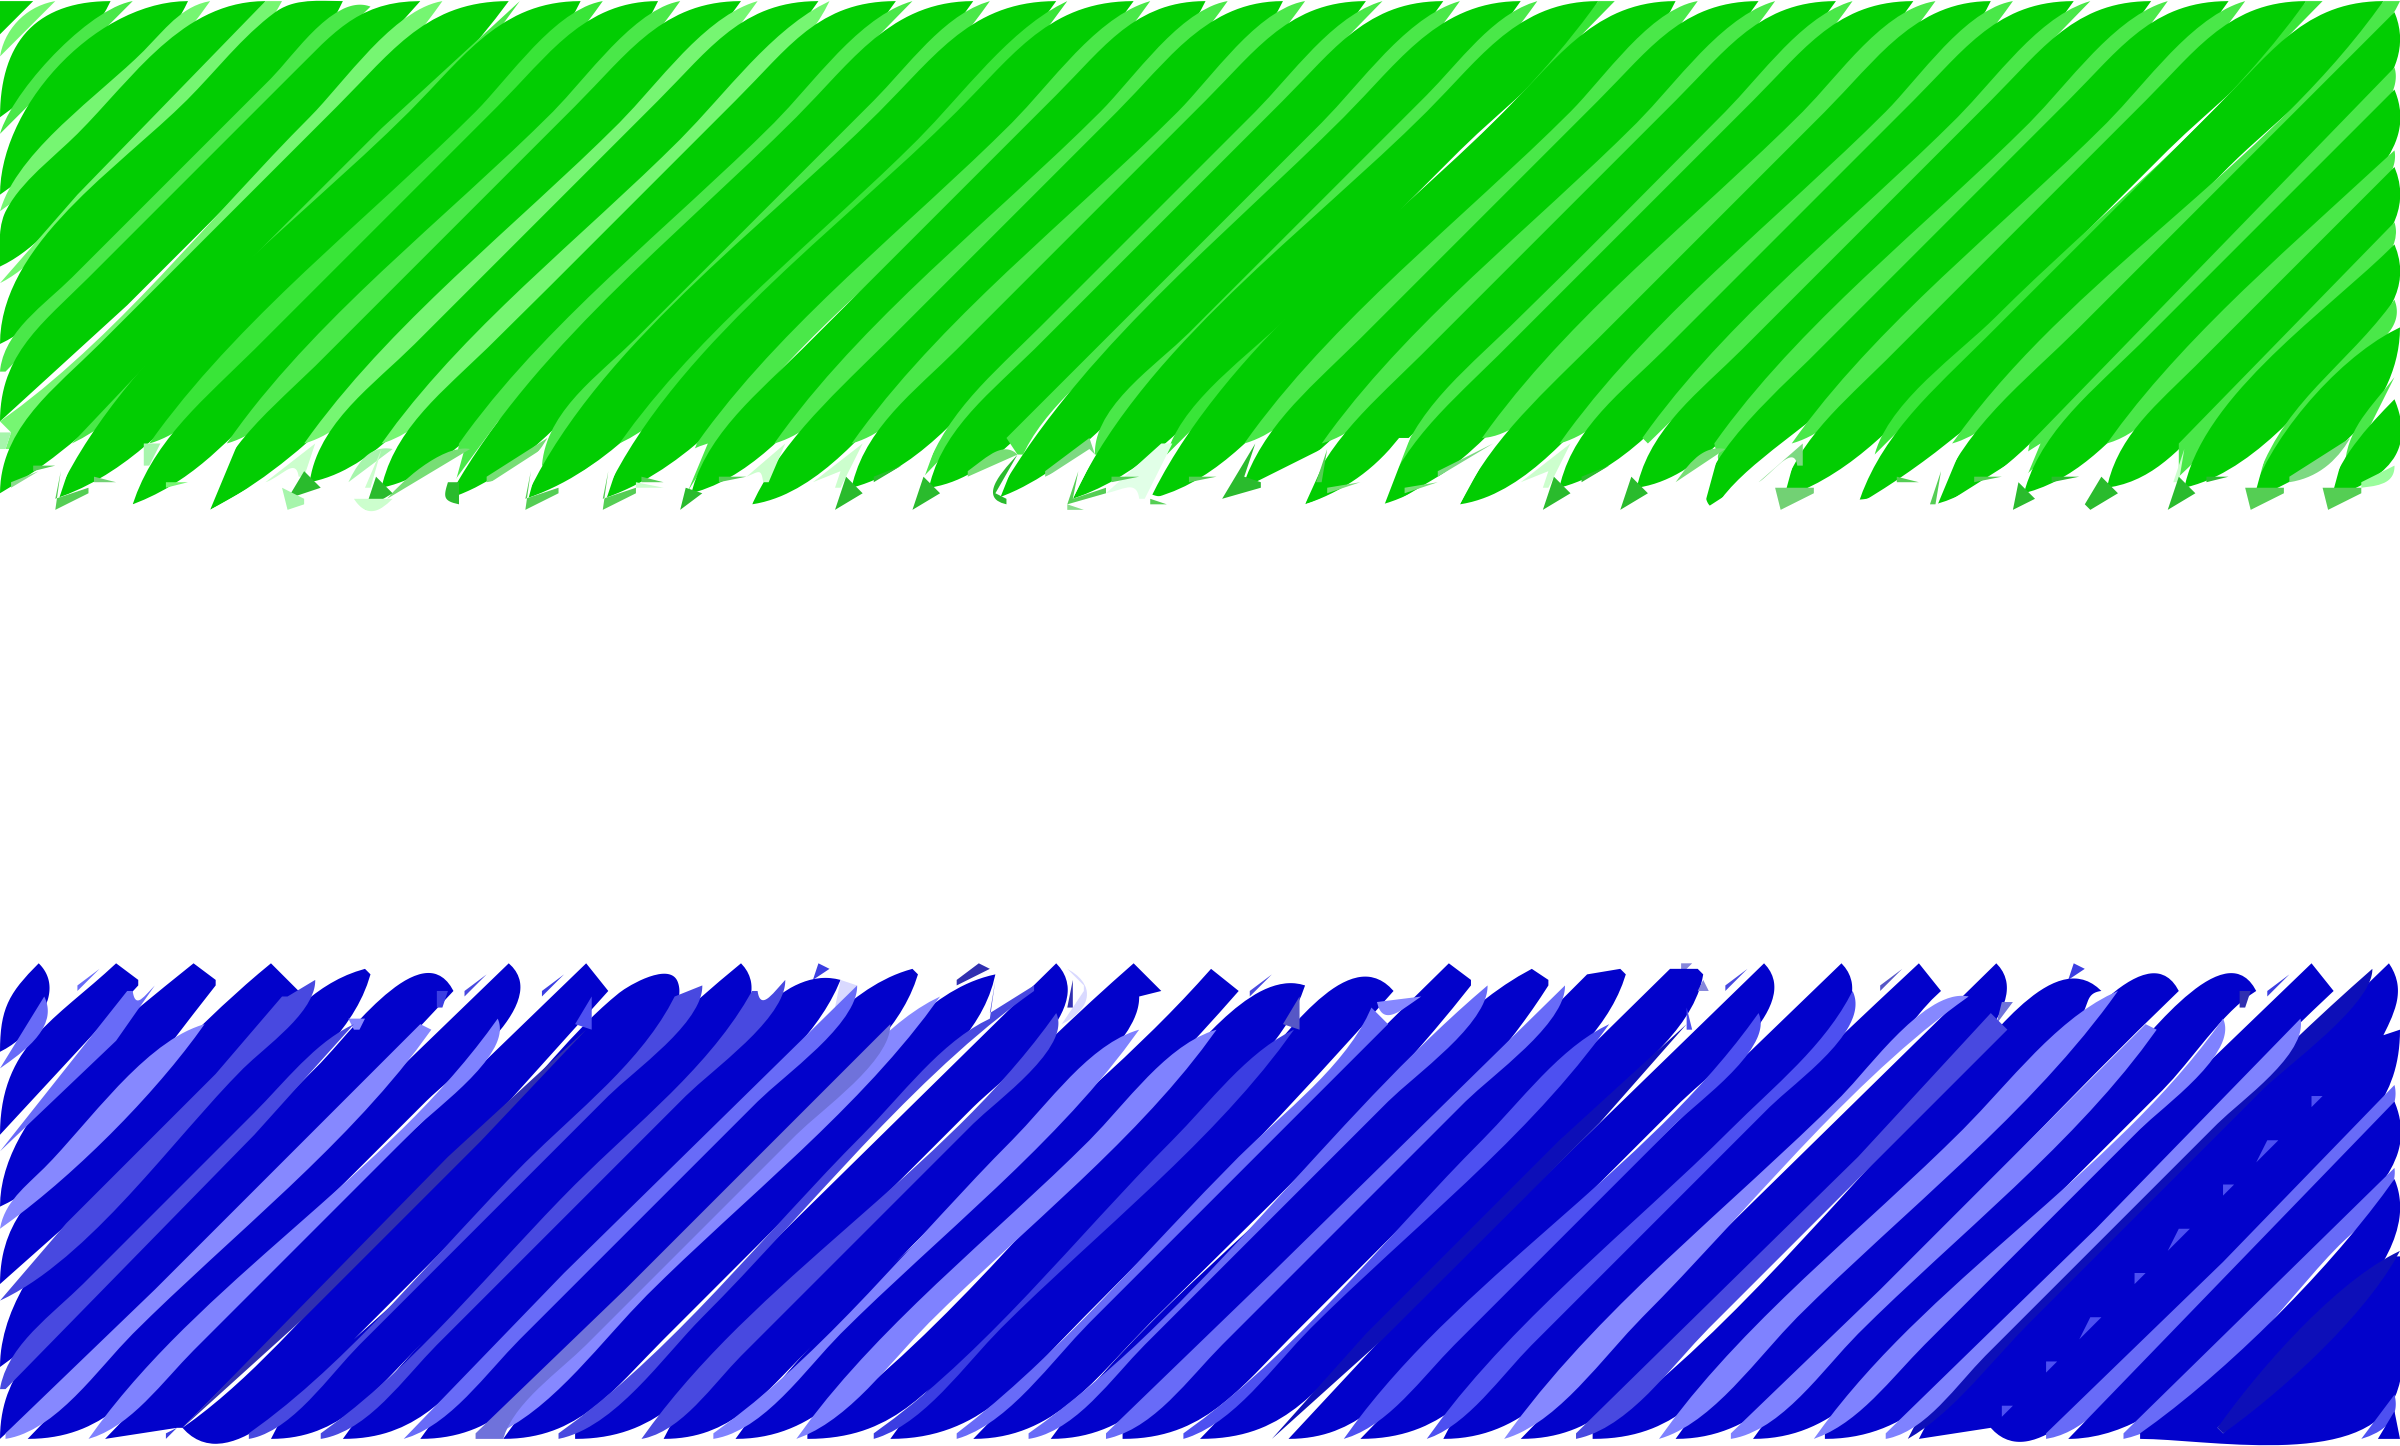 Flag of Sierra Leone linear by Joesph